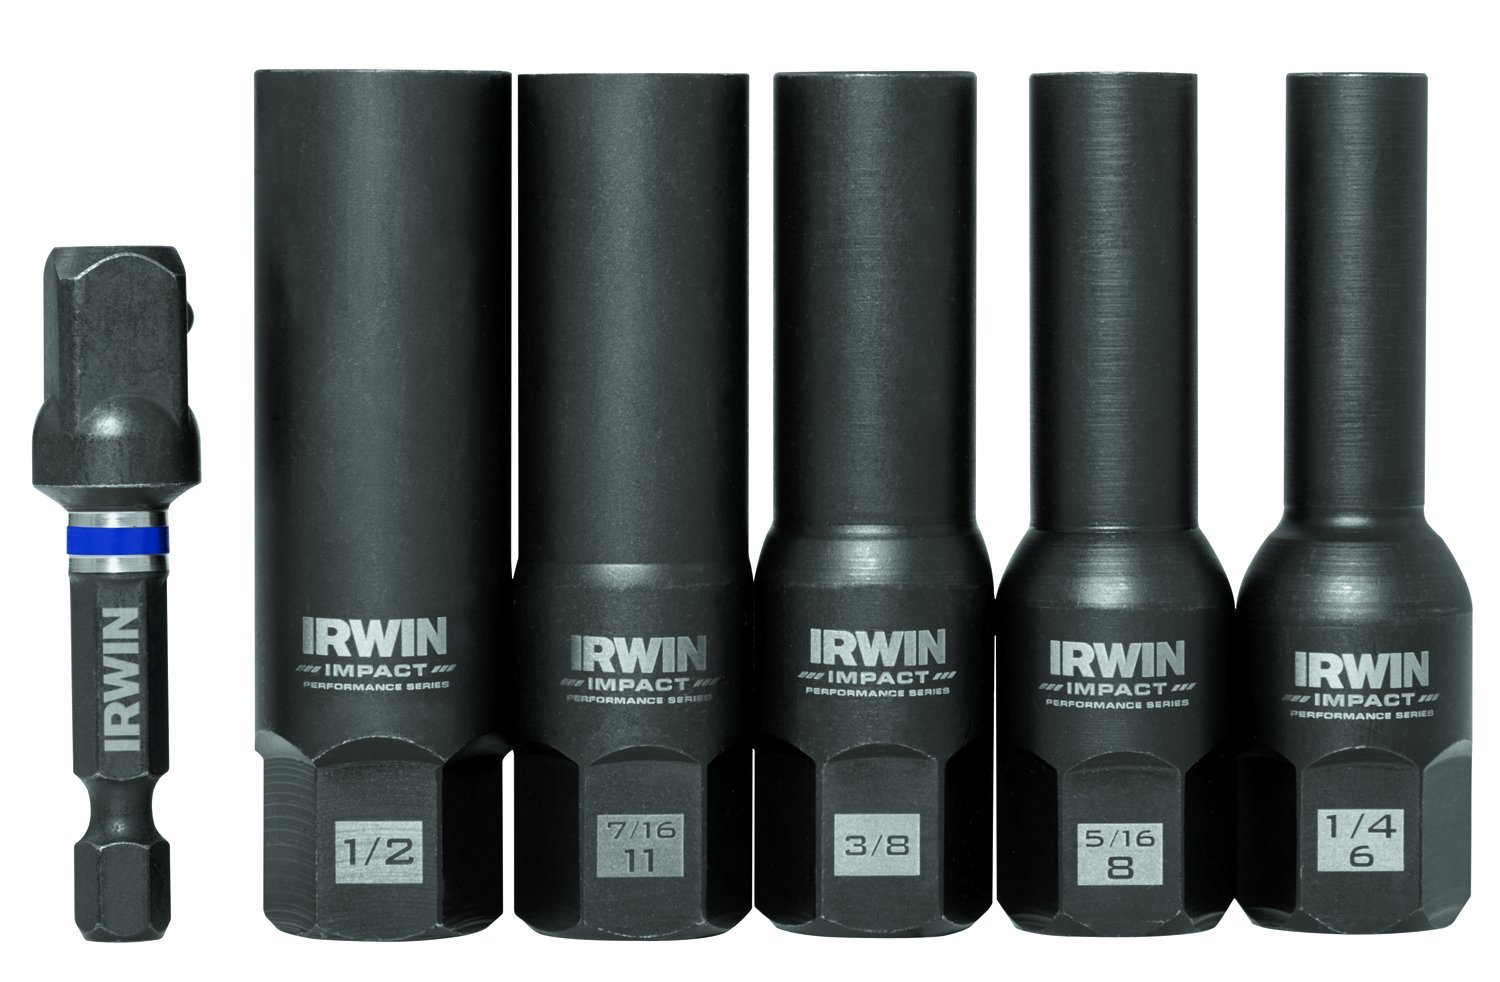 6-Piece Lug Nut Set with 1//4-Inch Hex Drive to 3//8-Inch Square Socket Adapter 1//2-Inch Square Drive 1859146 IRWIN Tools Impact Performance Series Bolt Grip Deep Well Bolt Extractors